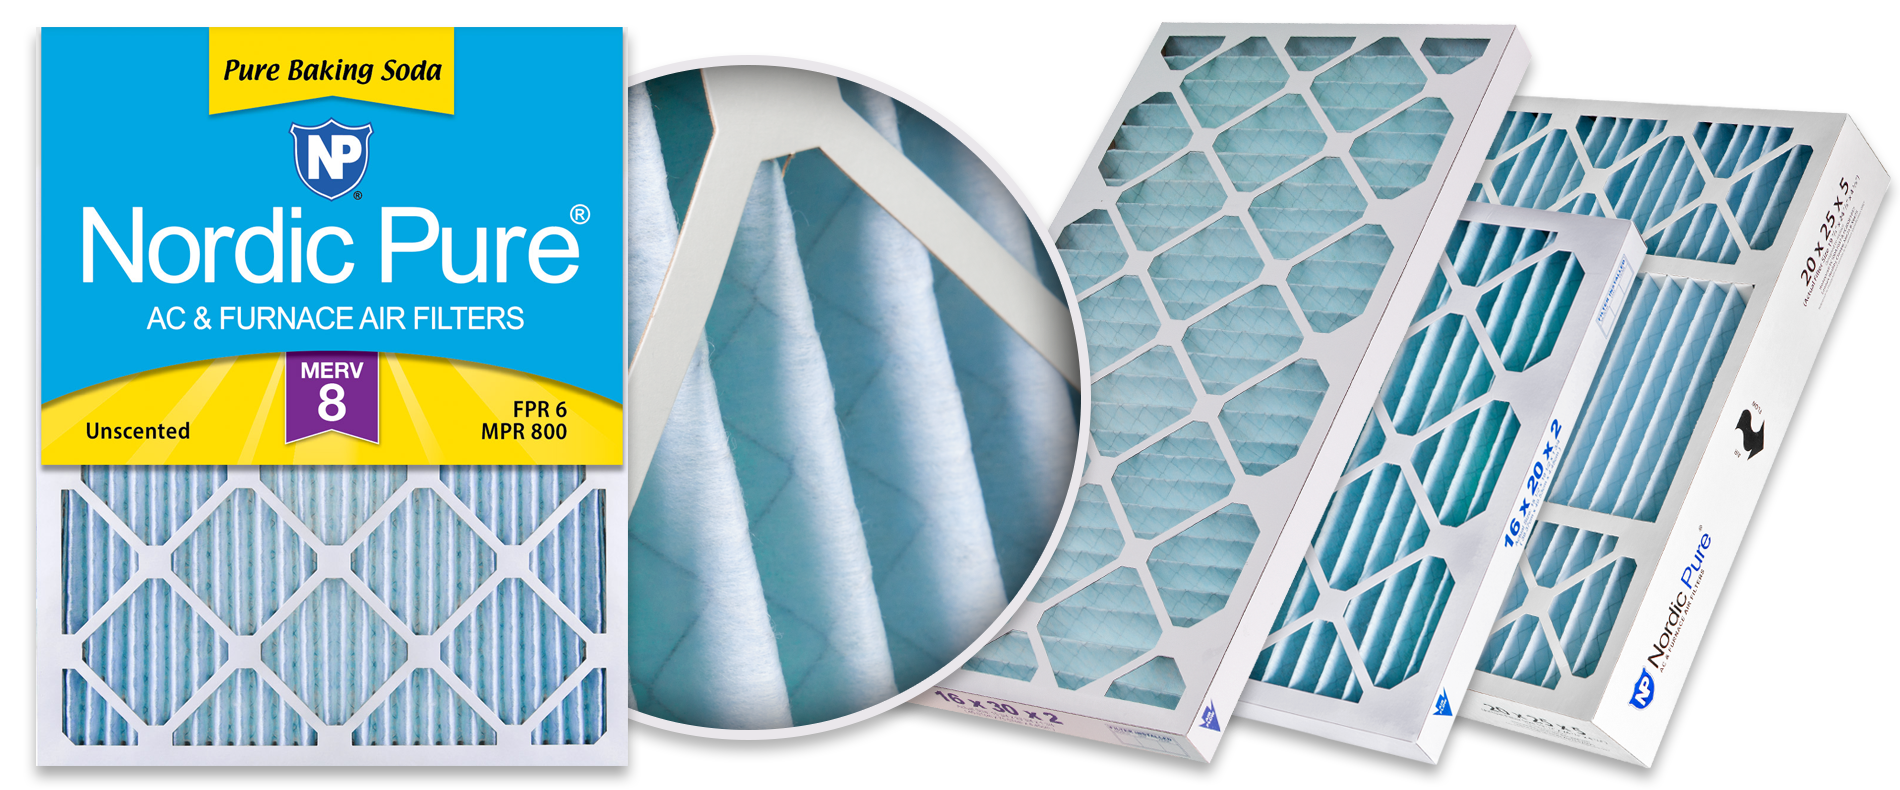 Nordic Pure 13x20x1 Exact MERV 8 Pure Carbon Pleated Odor Reduction AC Furnace Air Filters 4 Pack